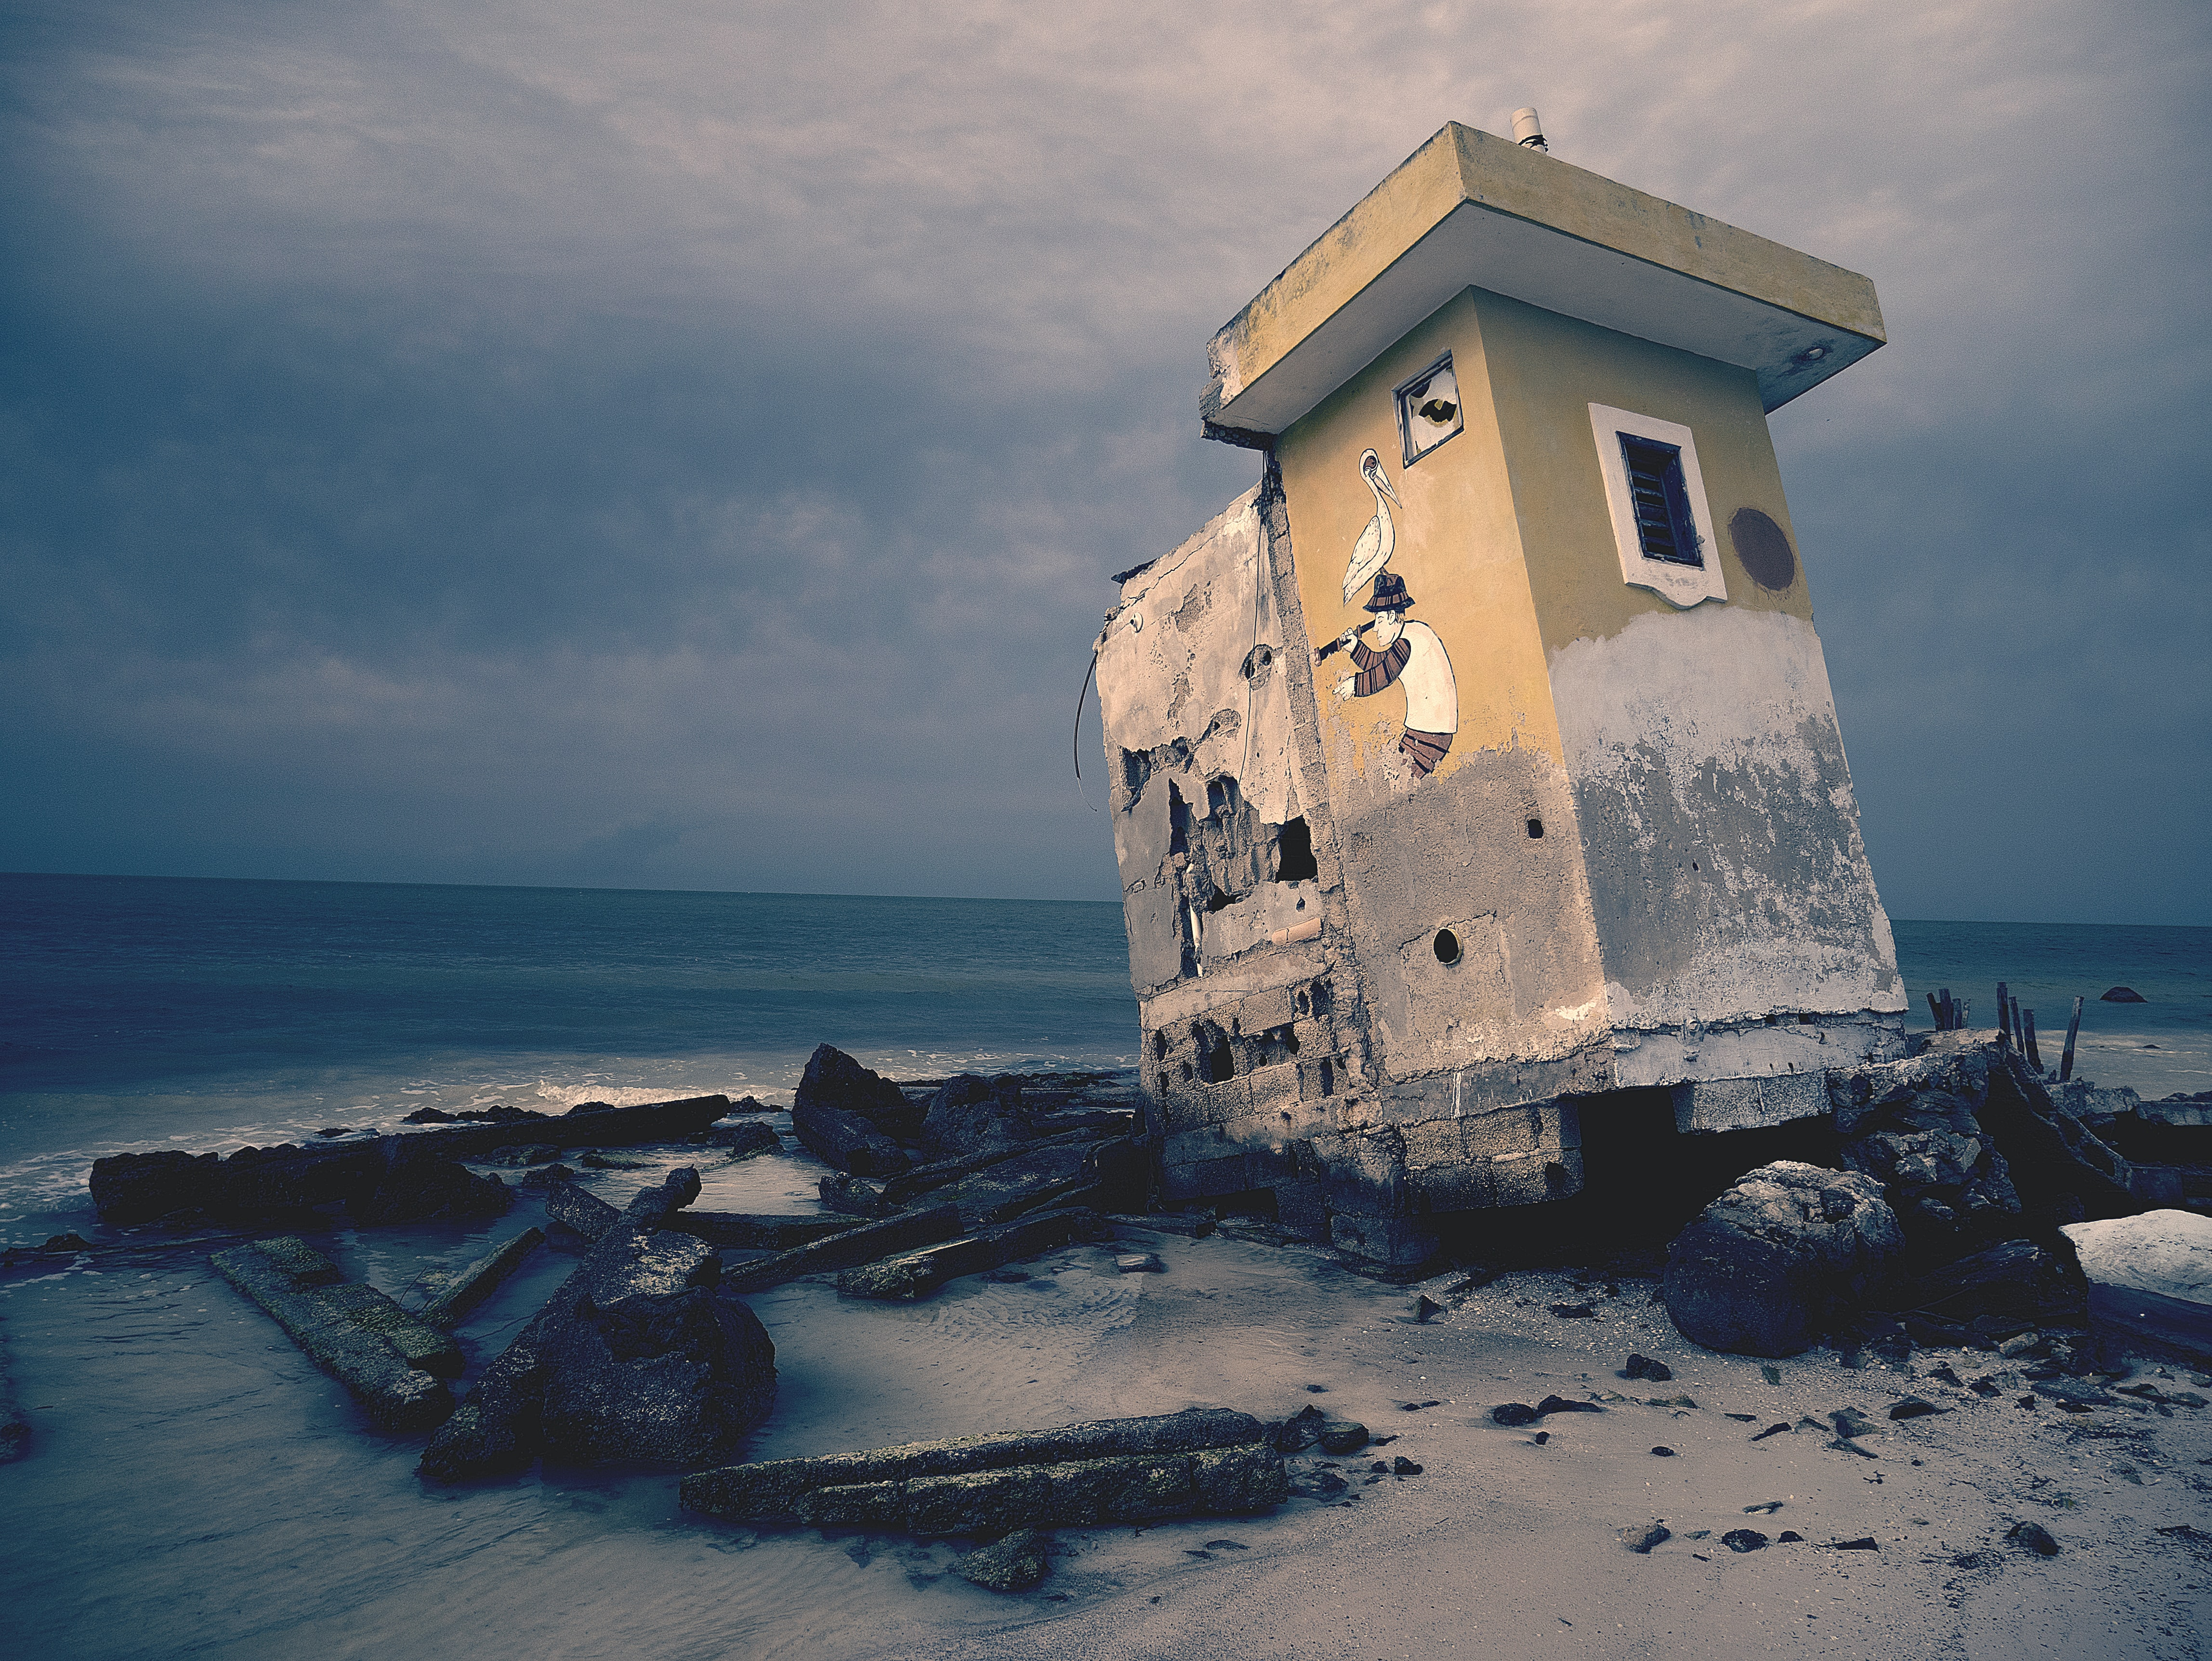 An abandoned and derelict structure on the beach.